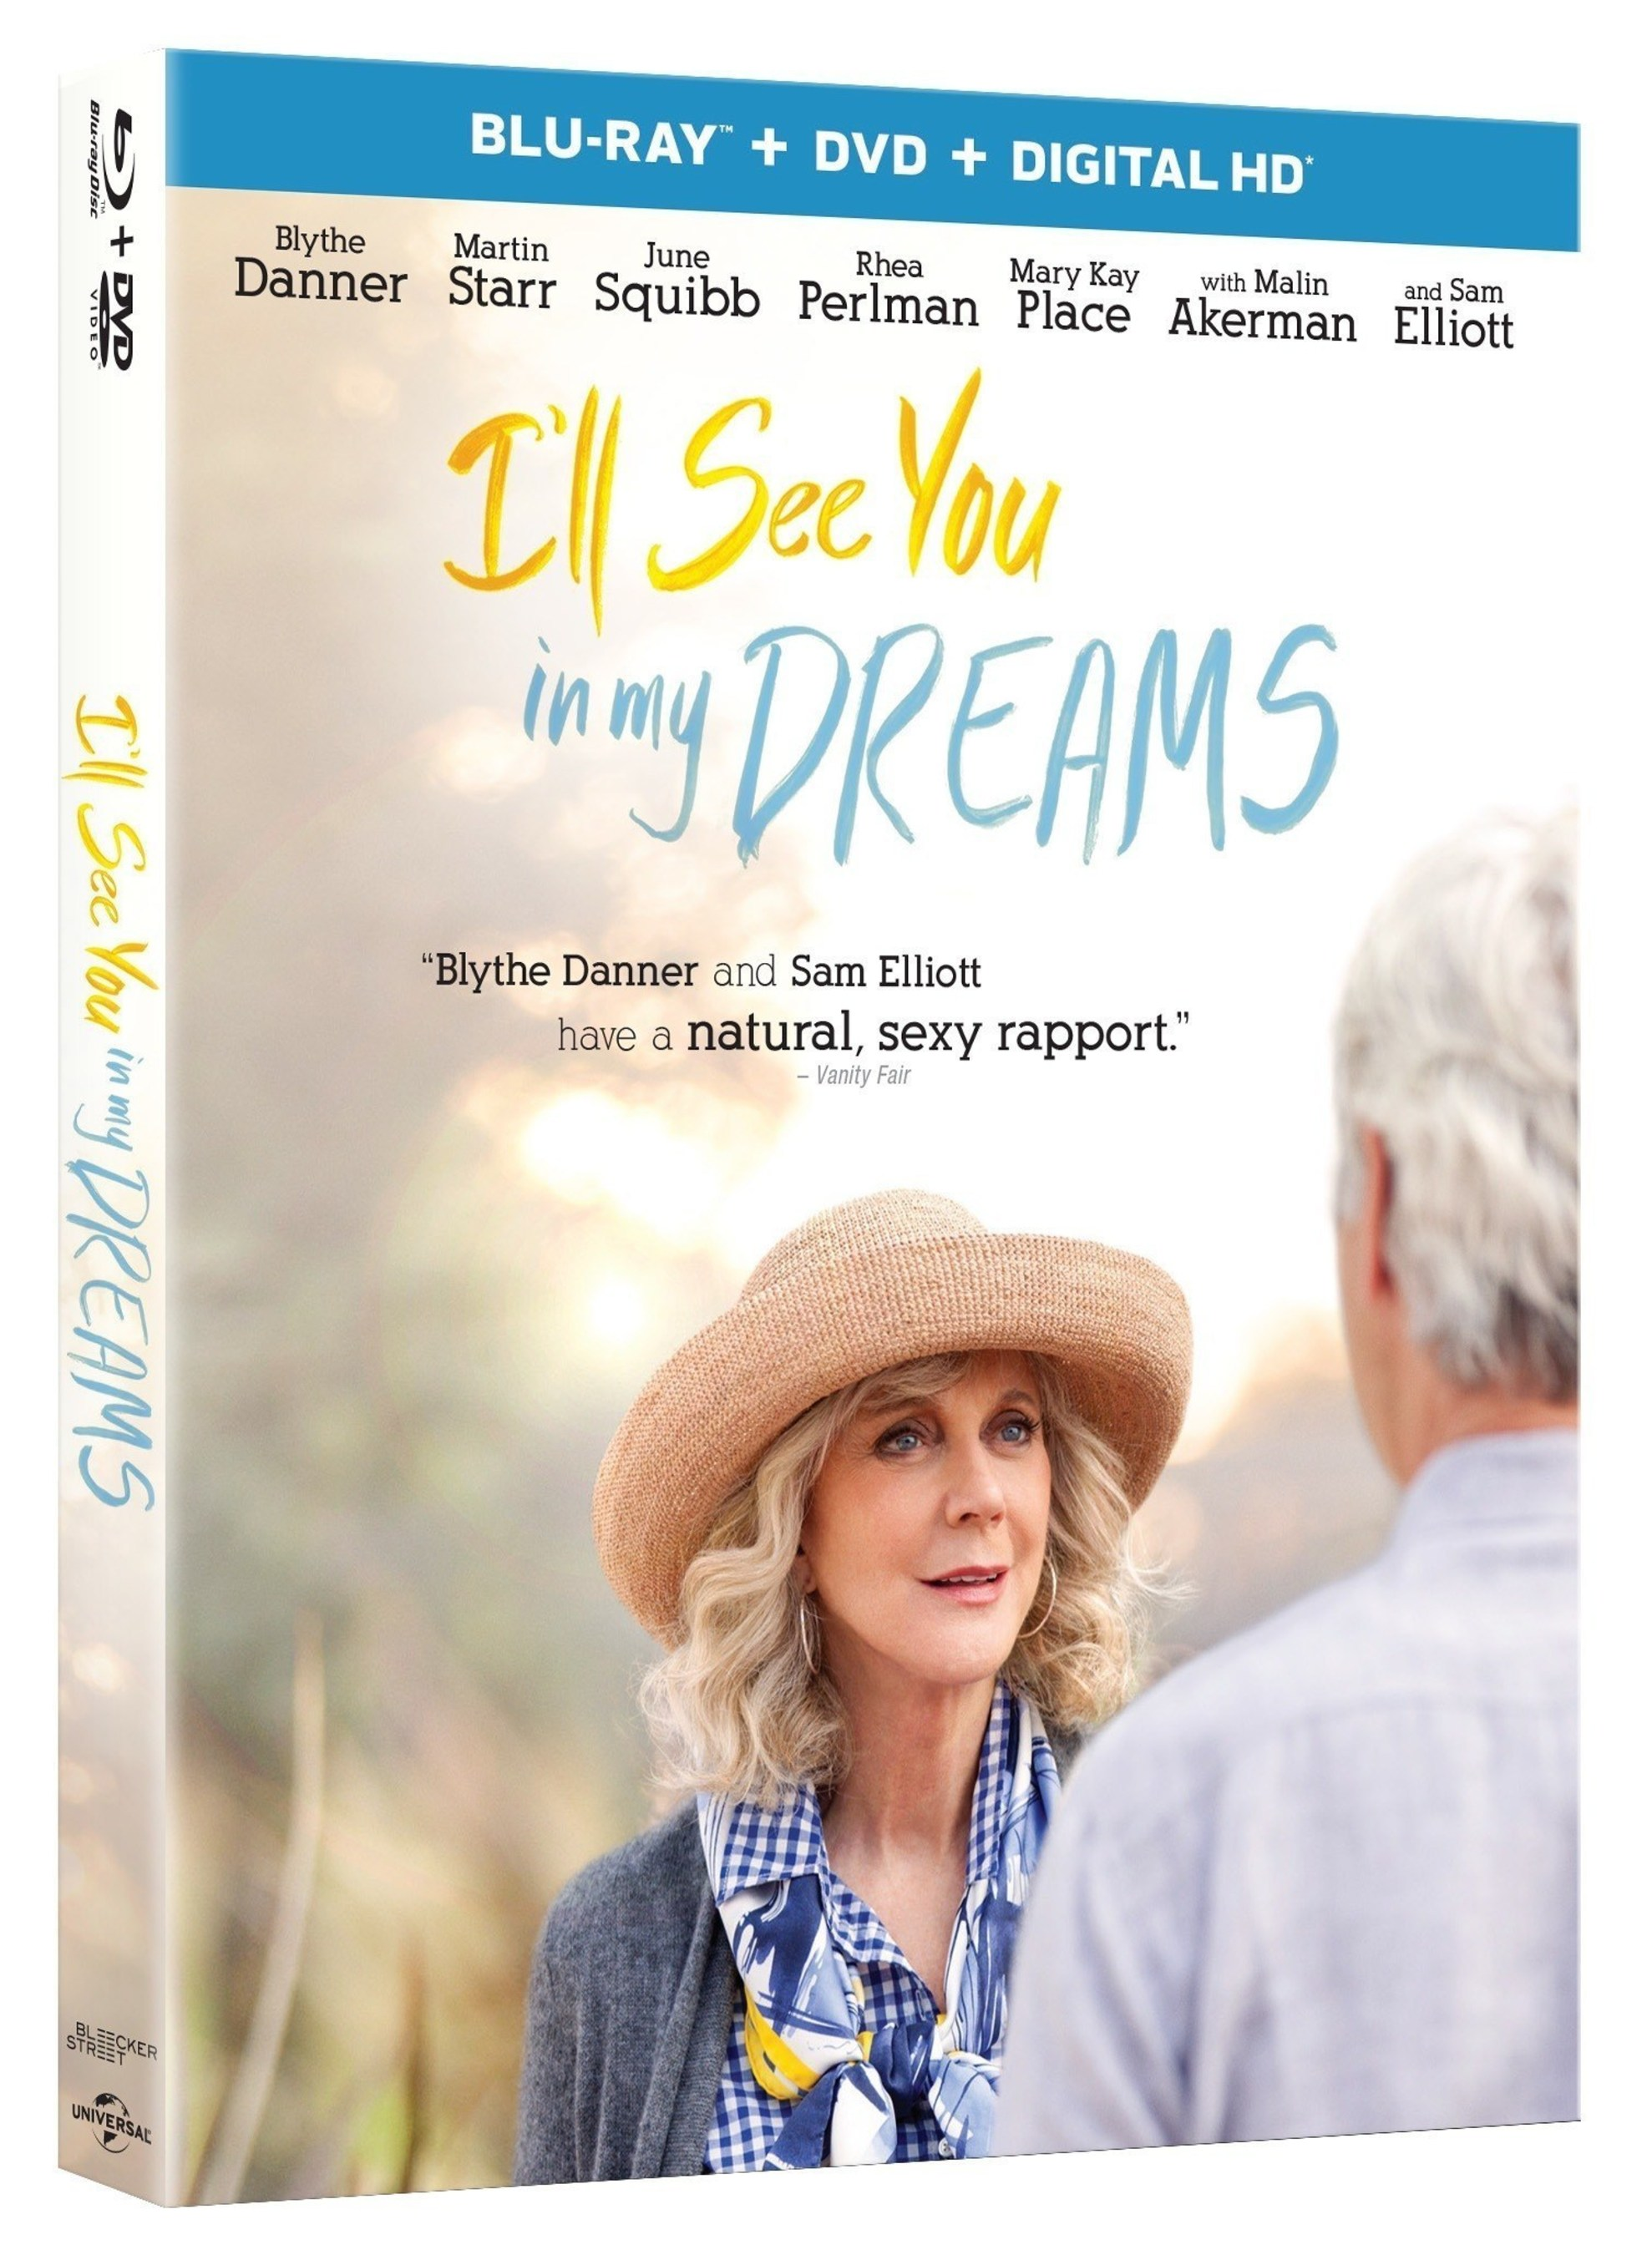 From Universal Pictures Home Entertainment: I'll See You In My Dreams